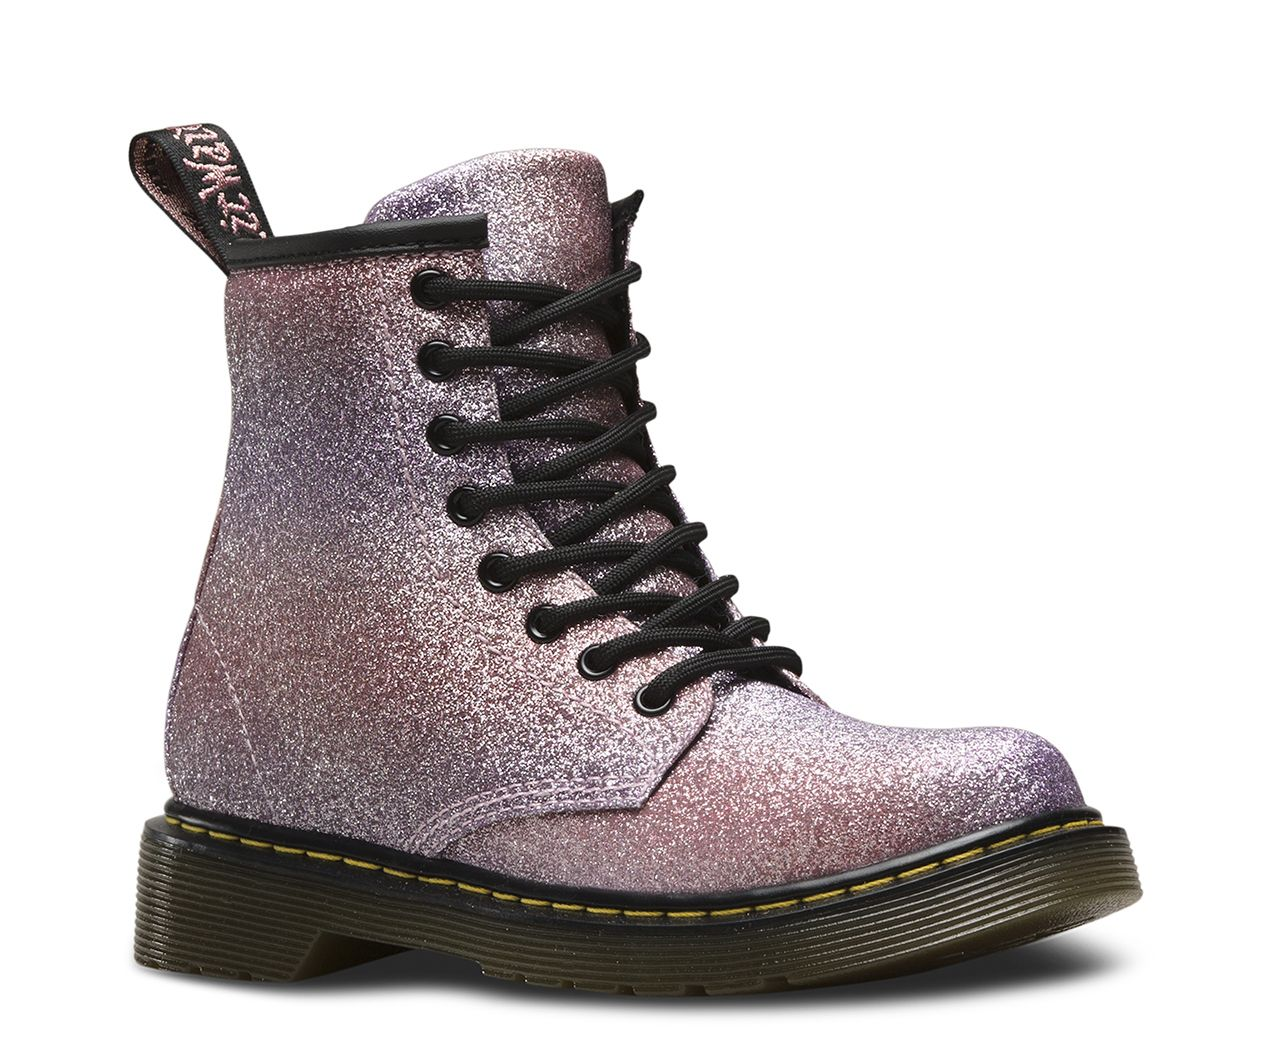 1bfb48e9df45 The Delaney is a boot for little rebels. A junior-sized version of the